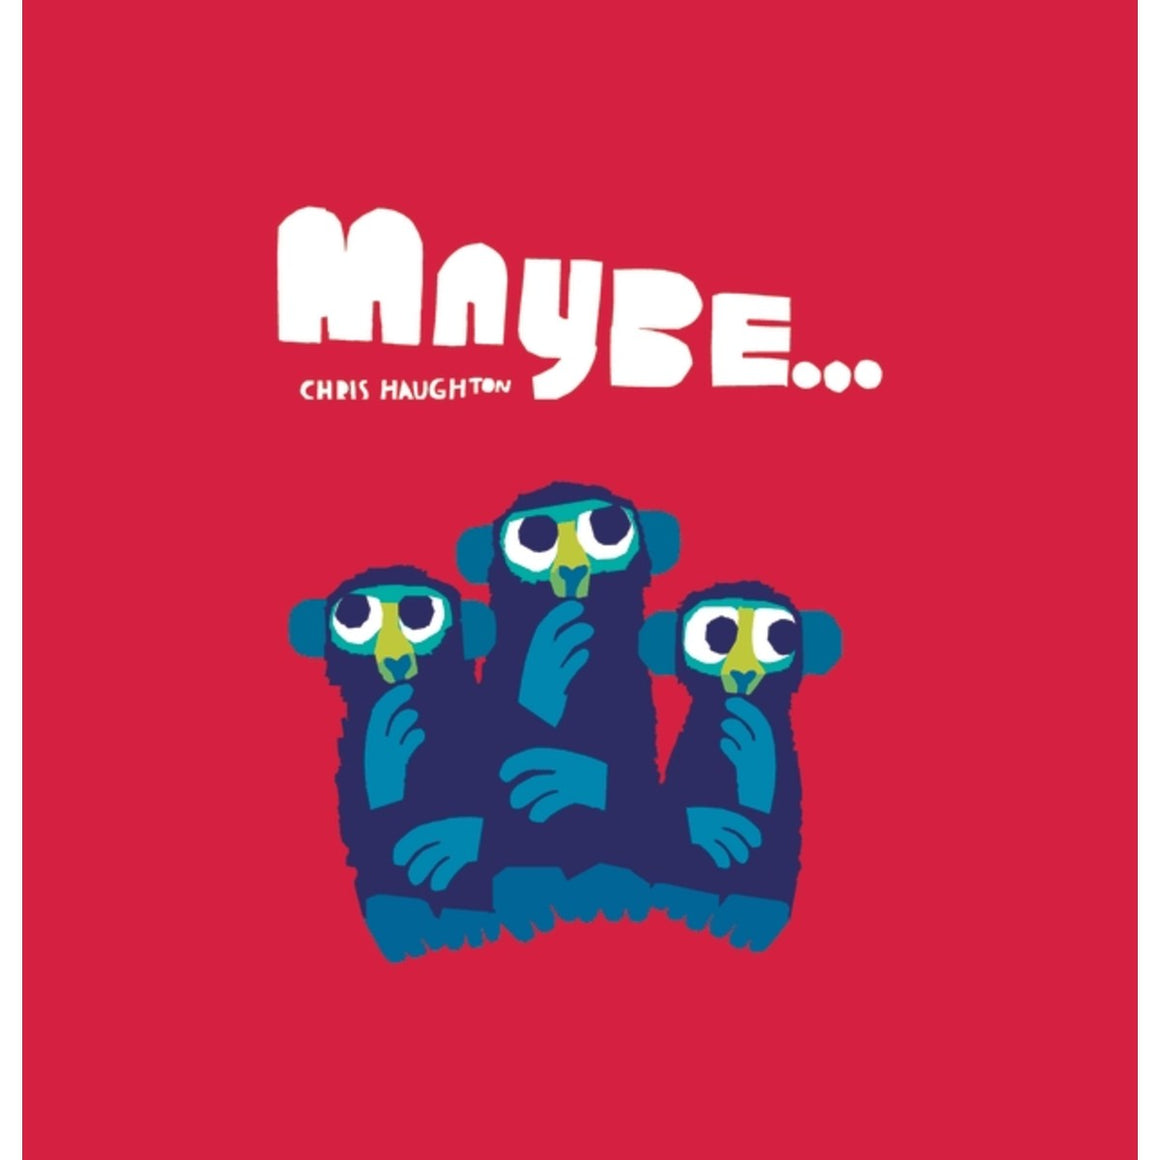 Image featuring a book cover with a red background, white text saying the words: Maybe... - with a graphic illustration of three monkeys in blue